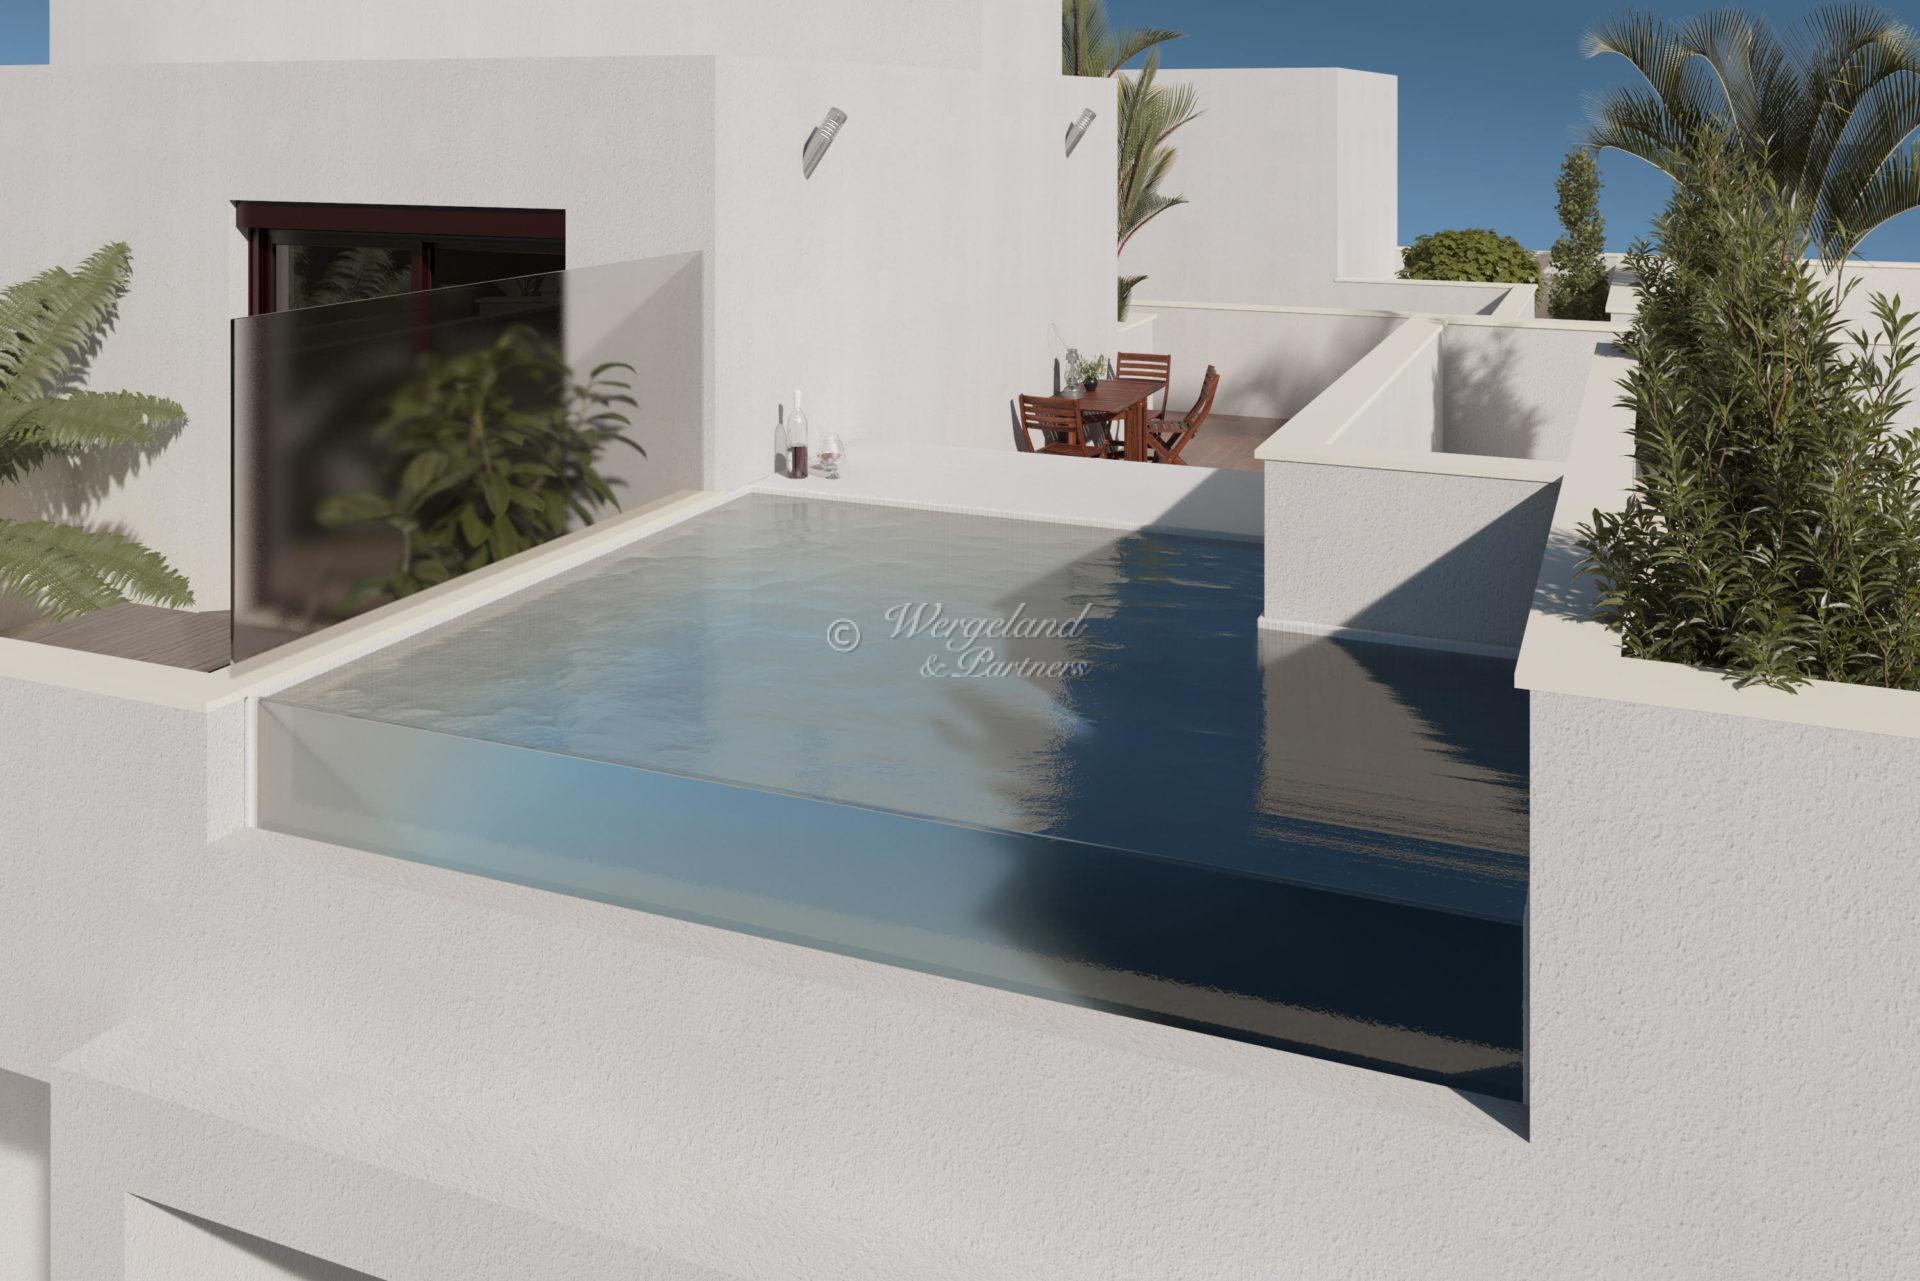 3 Bedroom Townhouse with beach location and shared pool on the roof terrace [PMVI]